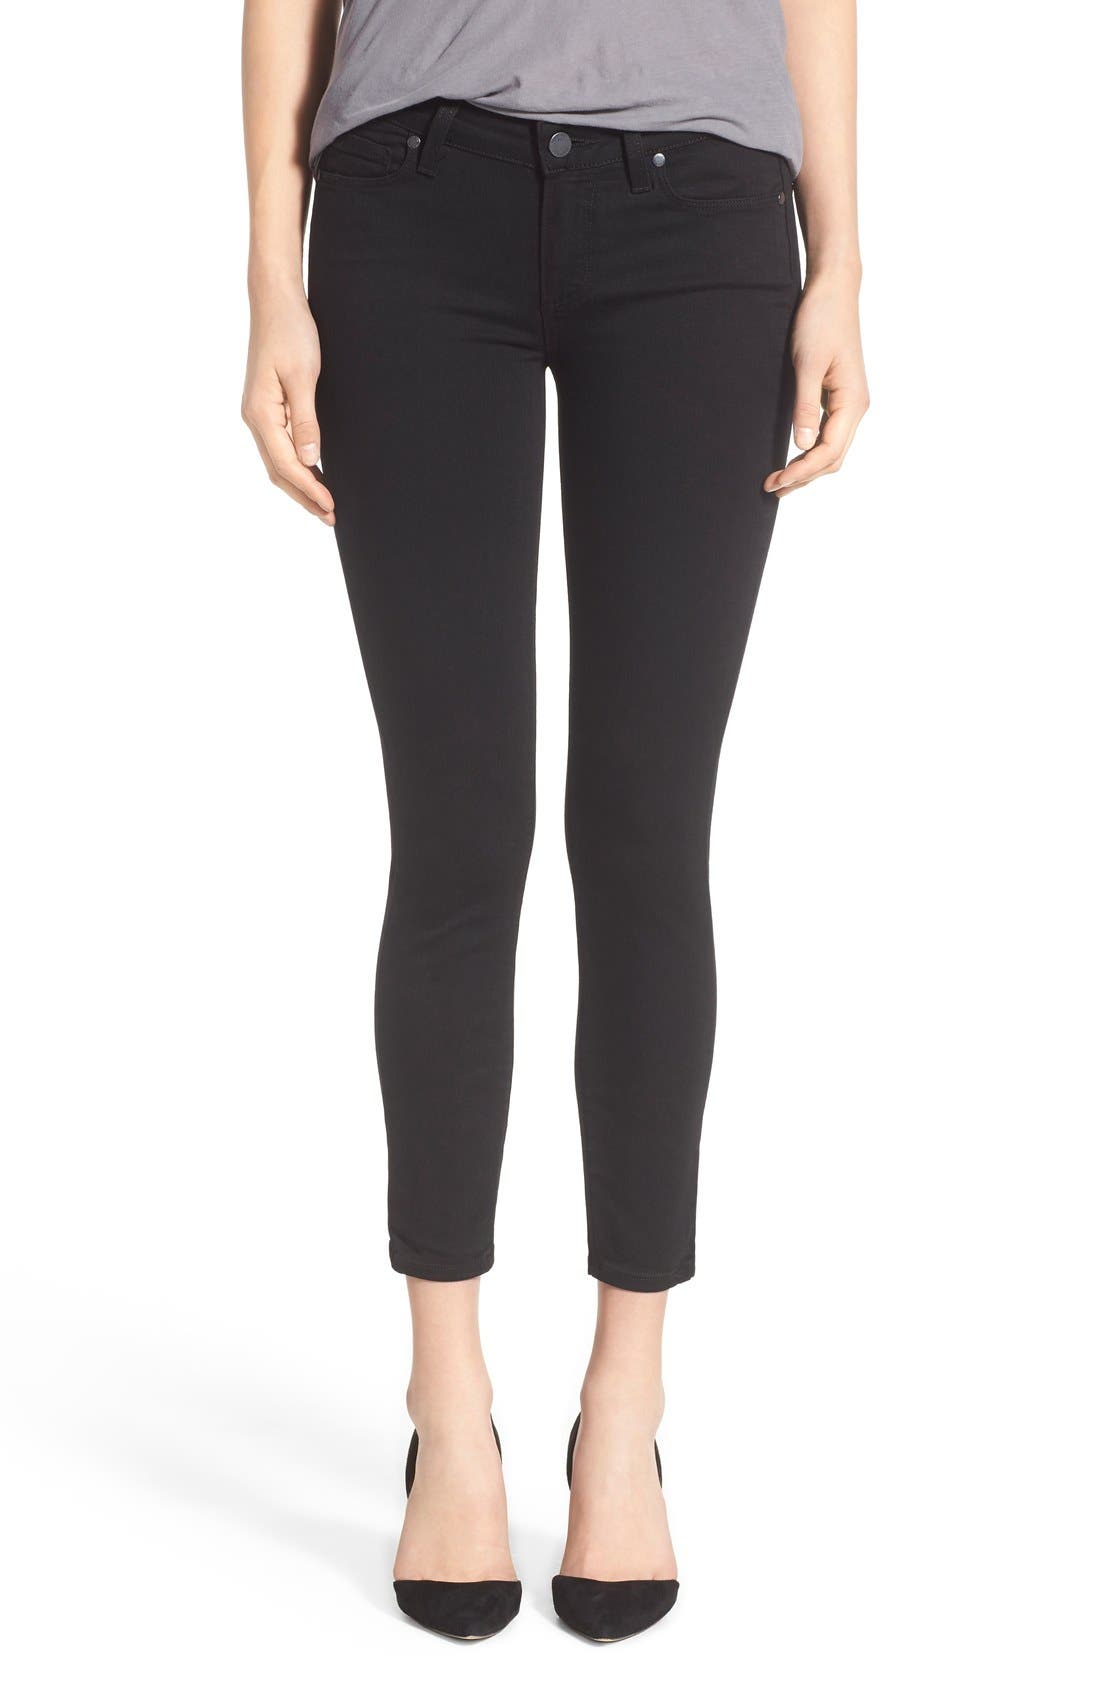 Transcend - Verdugo Crop Skinny Jeans, Main, color, BLACK